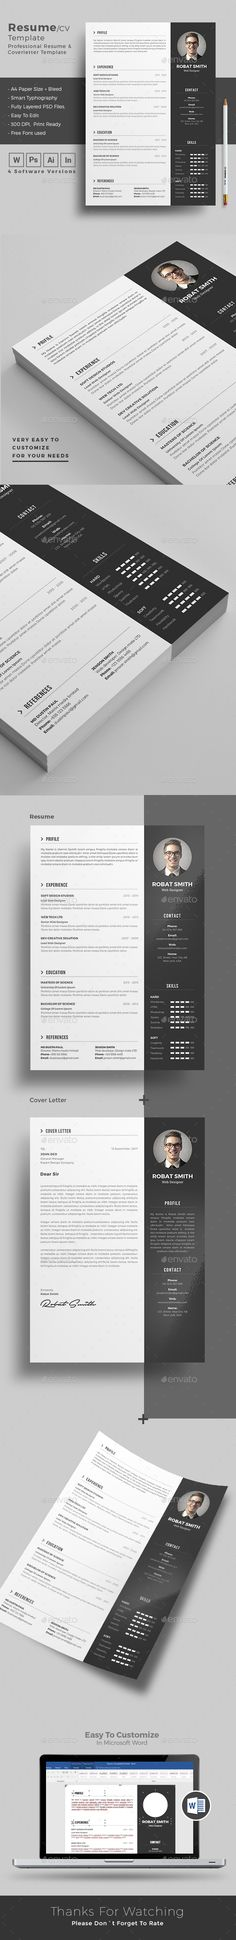 Clean Resume Word Indesign Template Resume Pinterest Resume - how to make resume on word